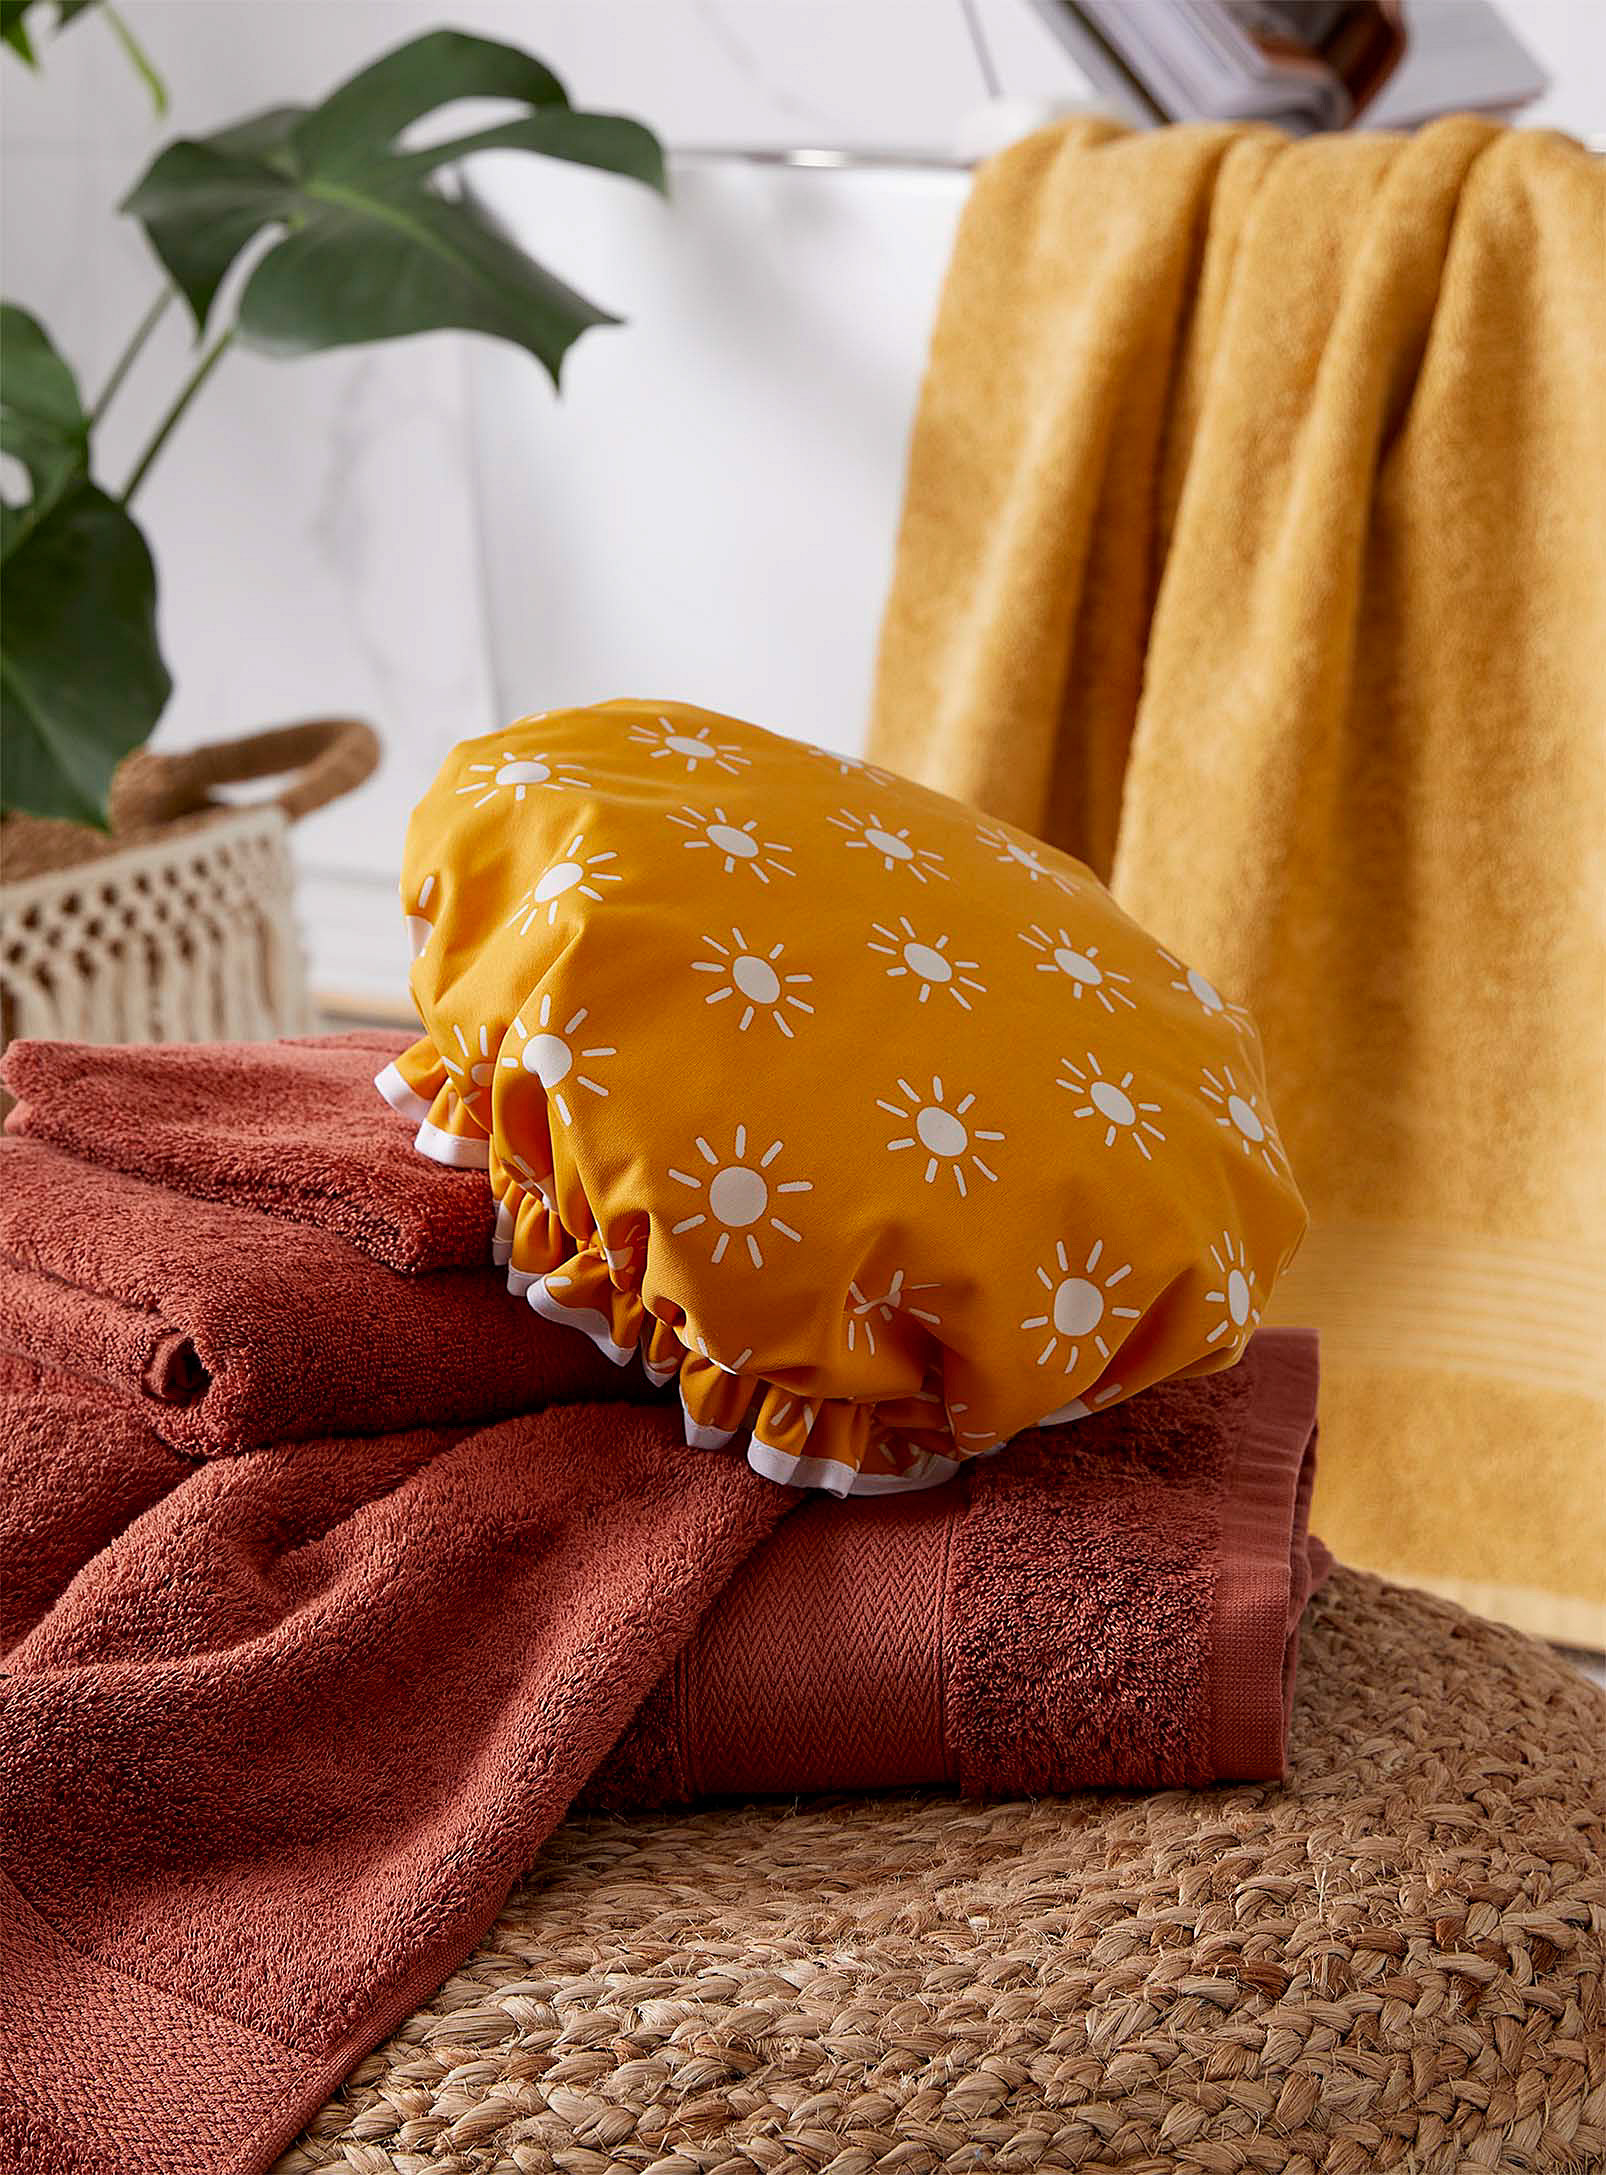 A shower cap with a sun pattern on it lying on a folded towel